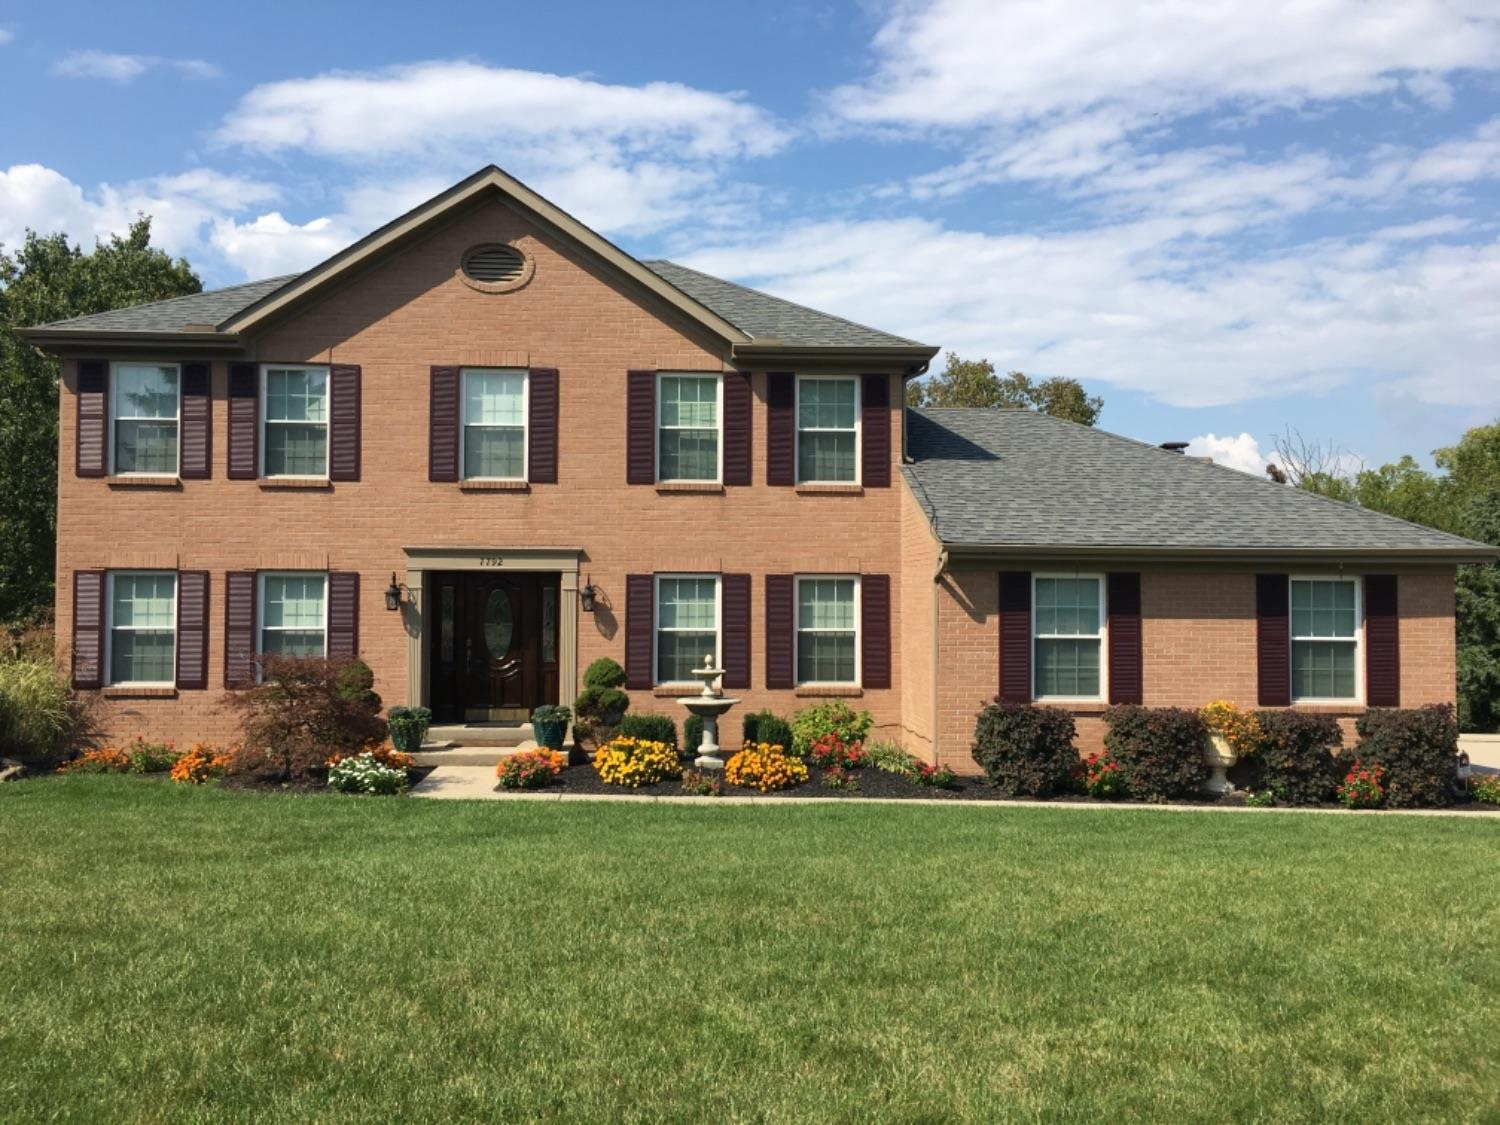 7792 Mitchell Park Dr Miami Twp. (West), OH